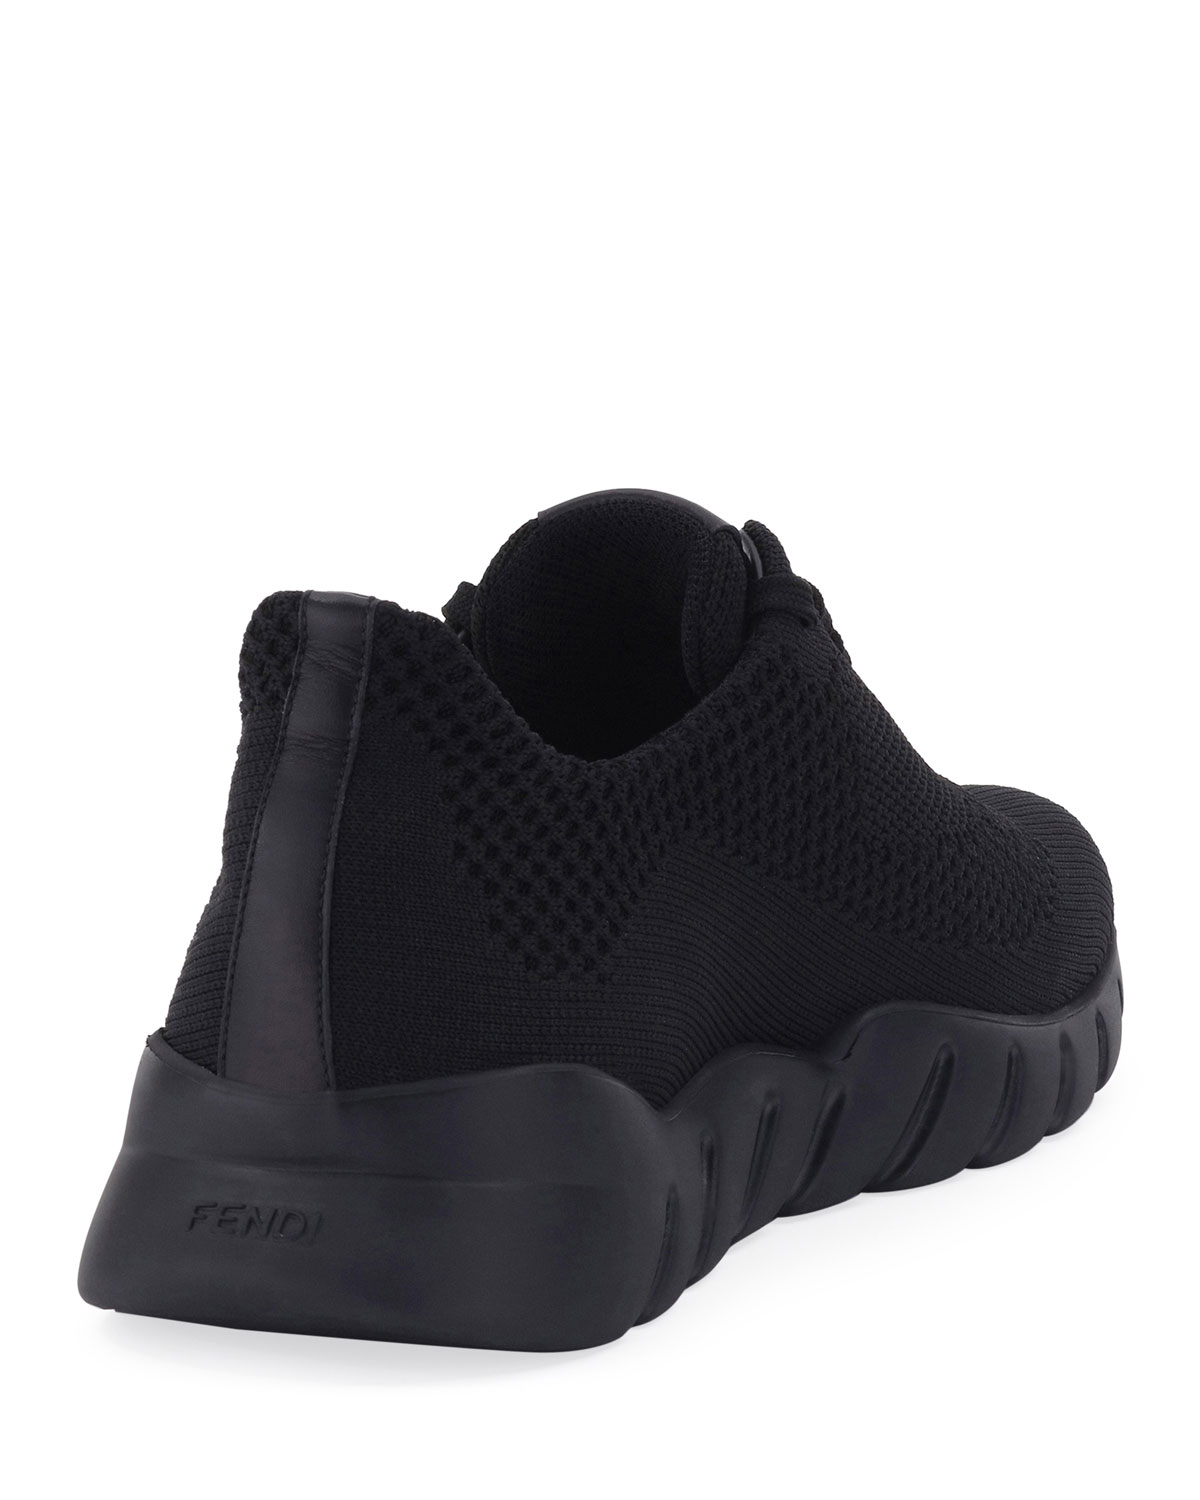 Black Knit Bag Bugs Sneakers Fendi Ebay Cheap Price For Sale Cheap Authentic Shipping Discount Sale Exclusive Cheap Online GPOUvW